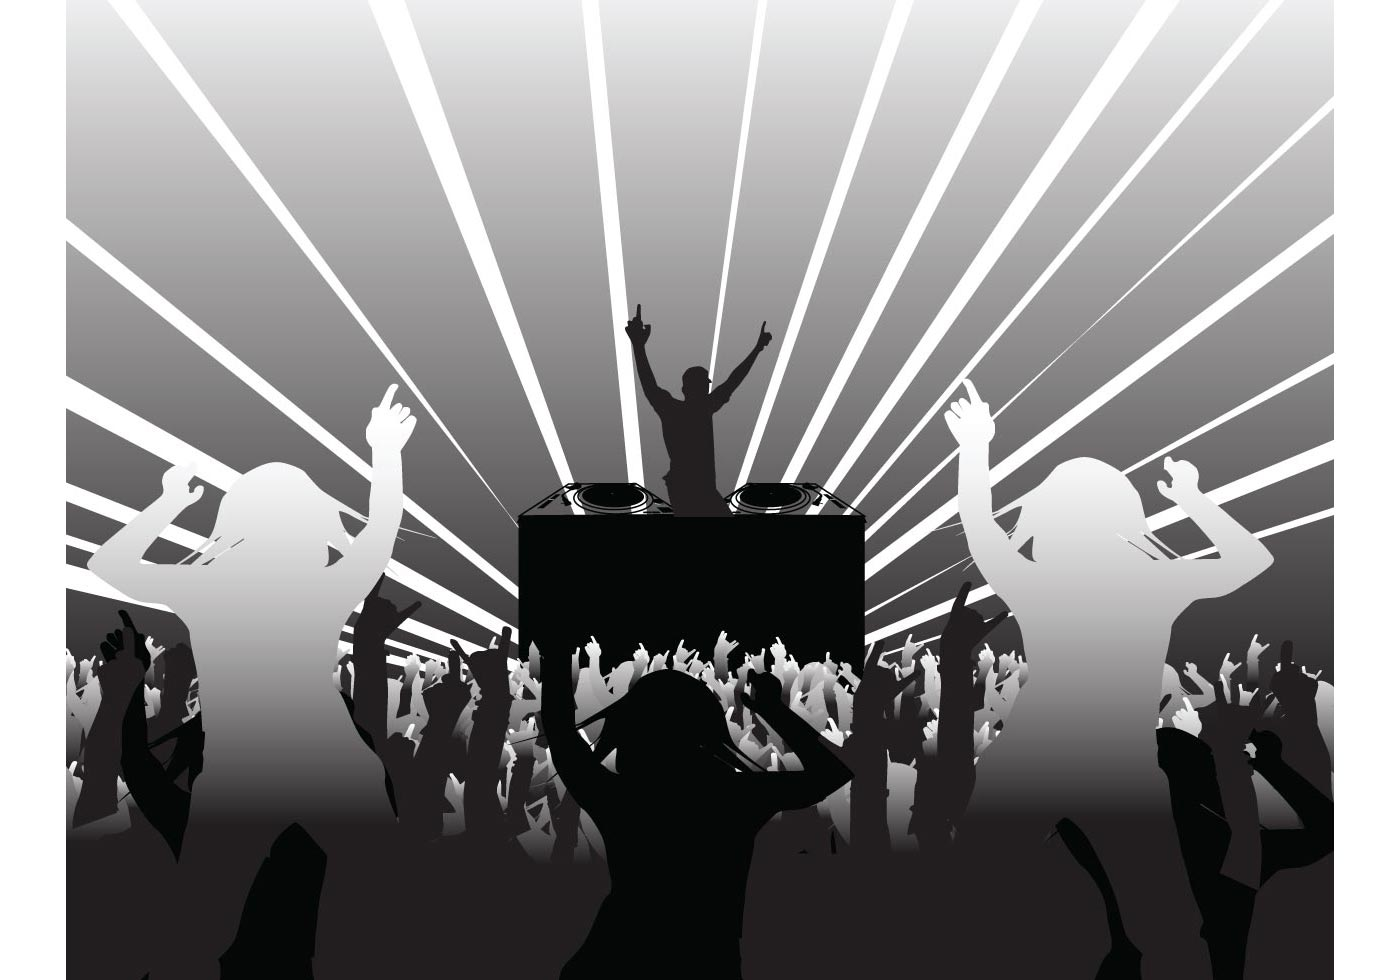 DJ and Party People - Download Free Vector Art, Stock ...